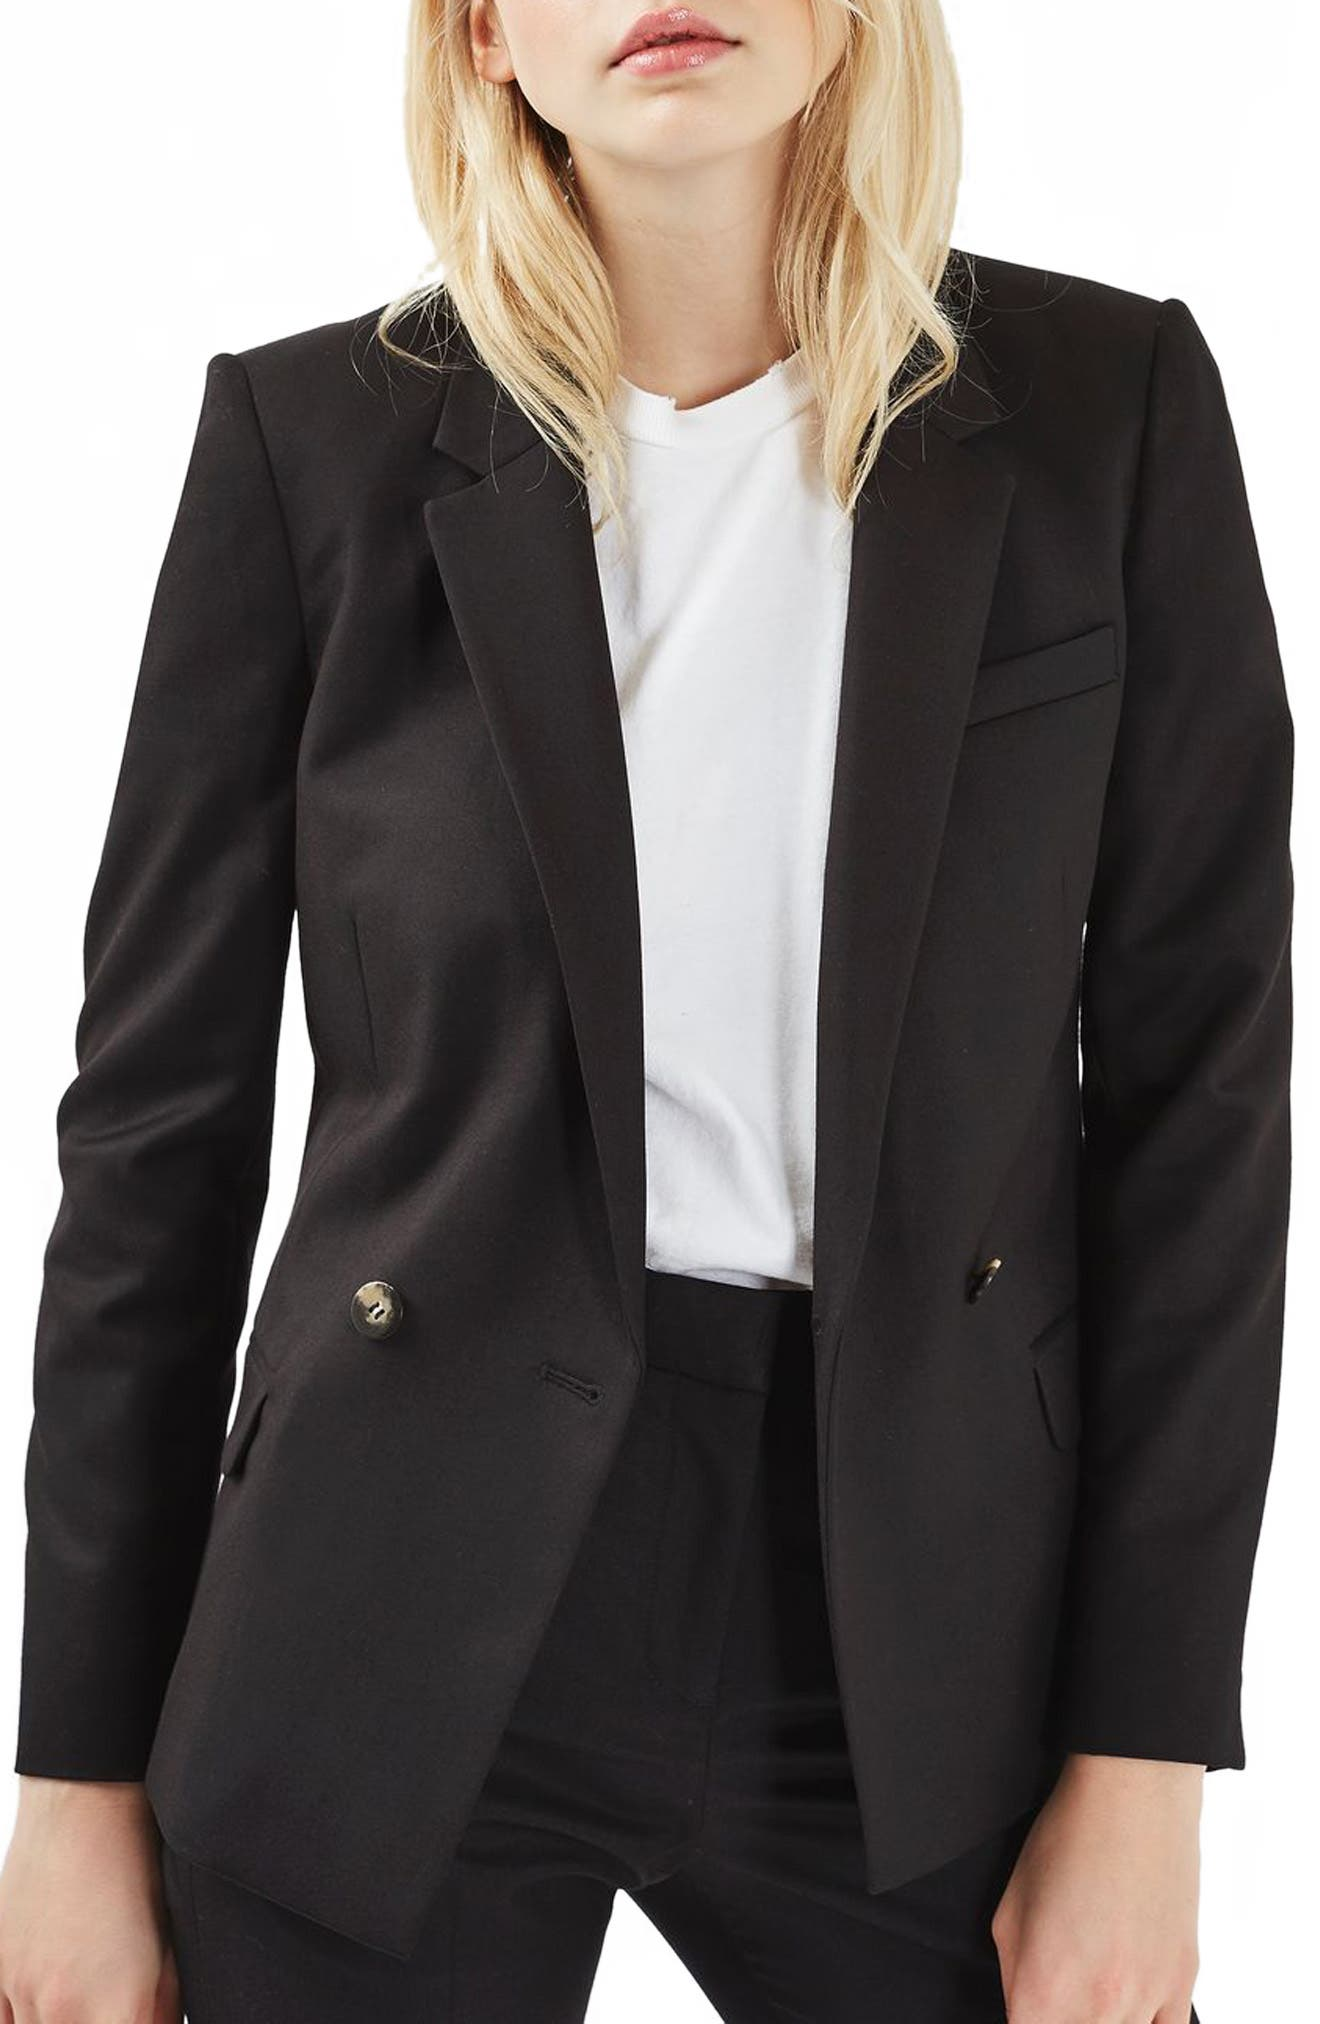 Topshop Double Breasted Suit Jacket